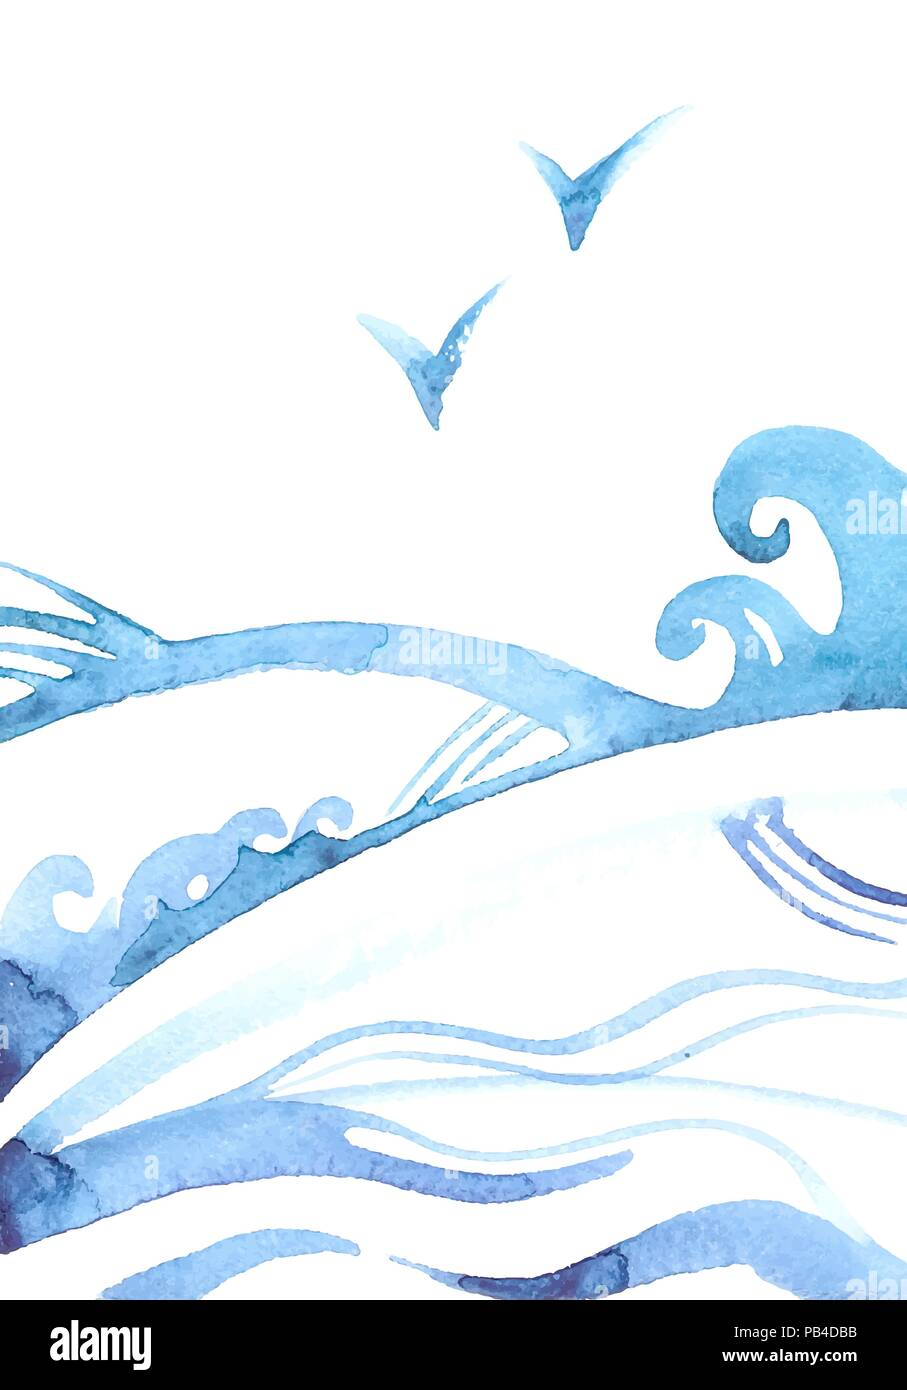 Abstract Ocean Background With Waves And Gulls Vector